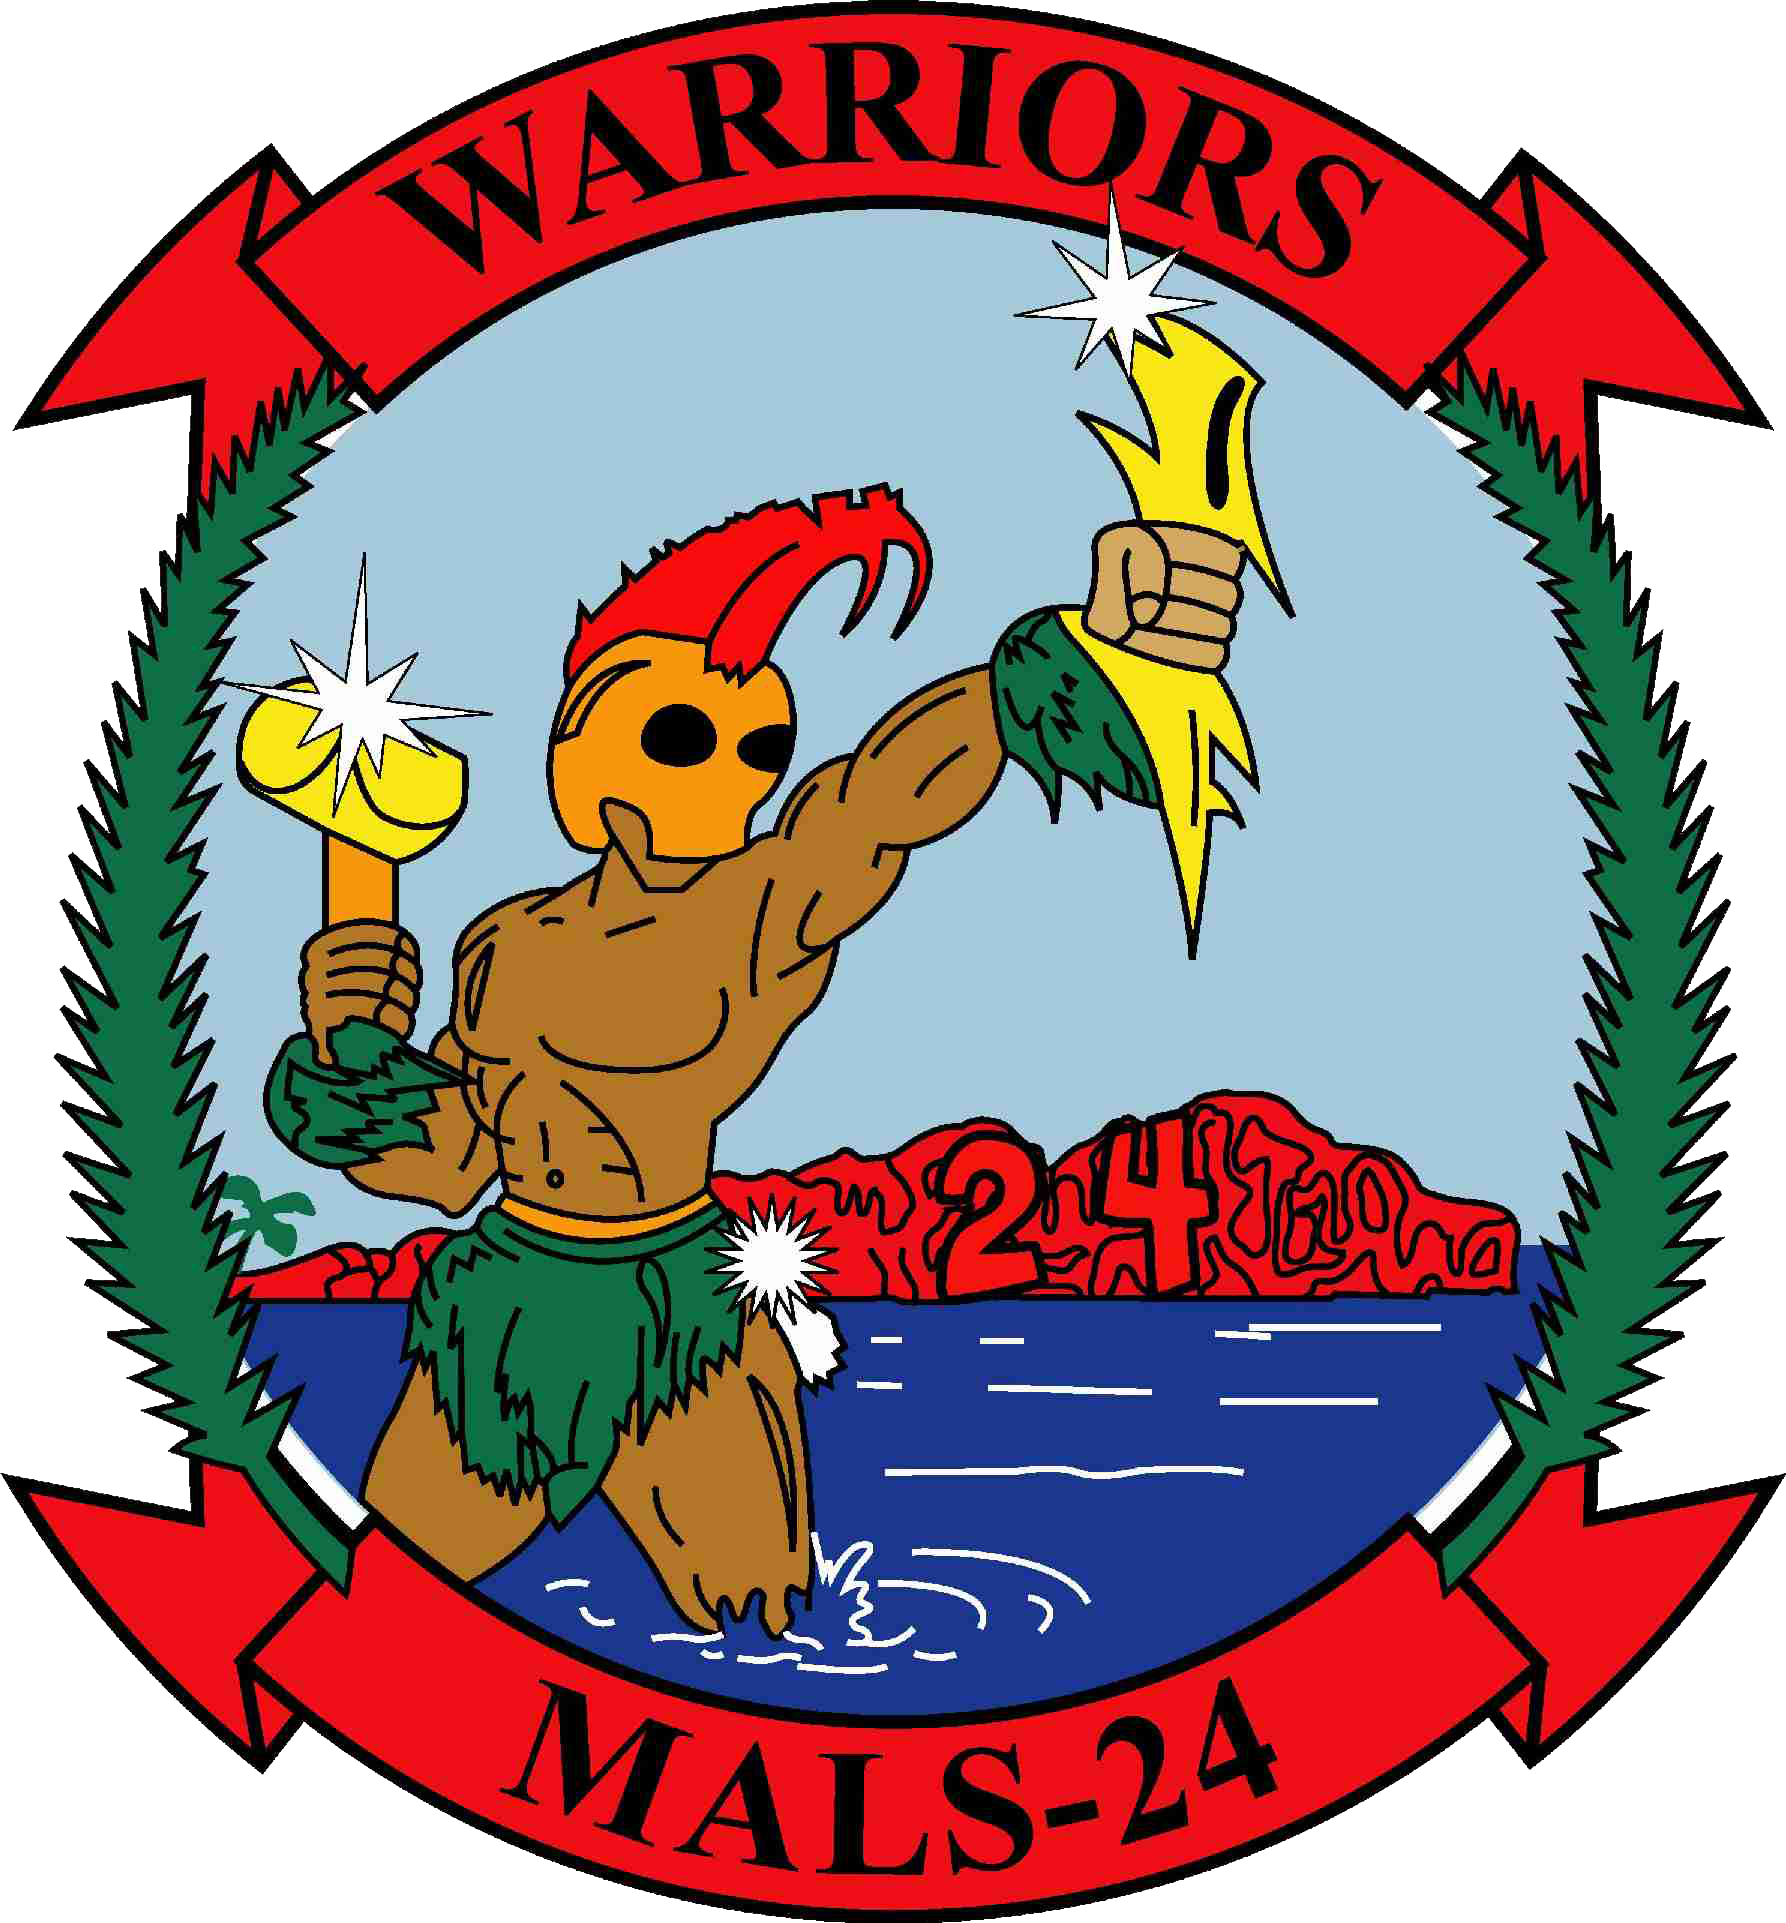 File:MALS-24 insignia.png - Wikimedia Commons